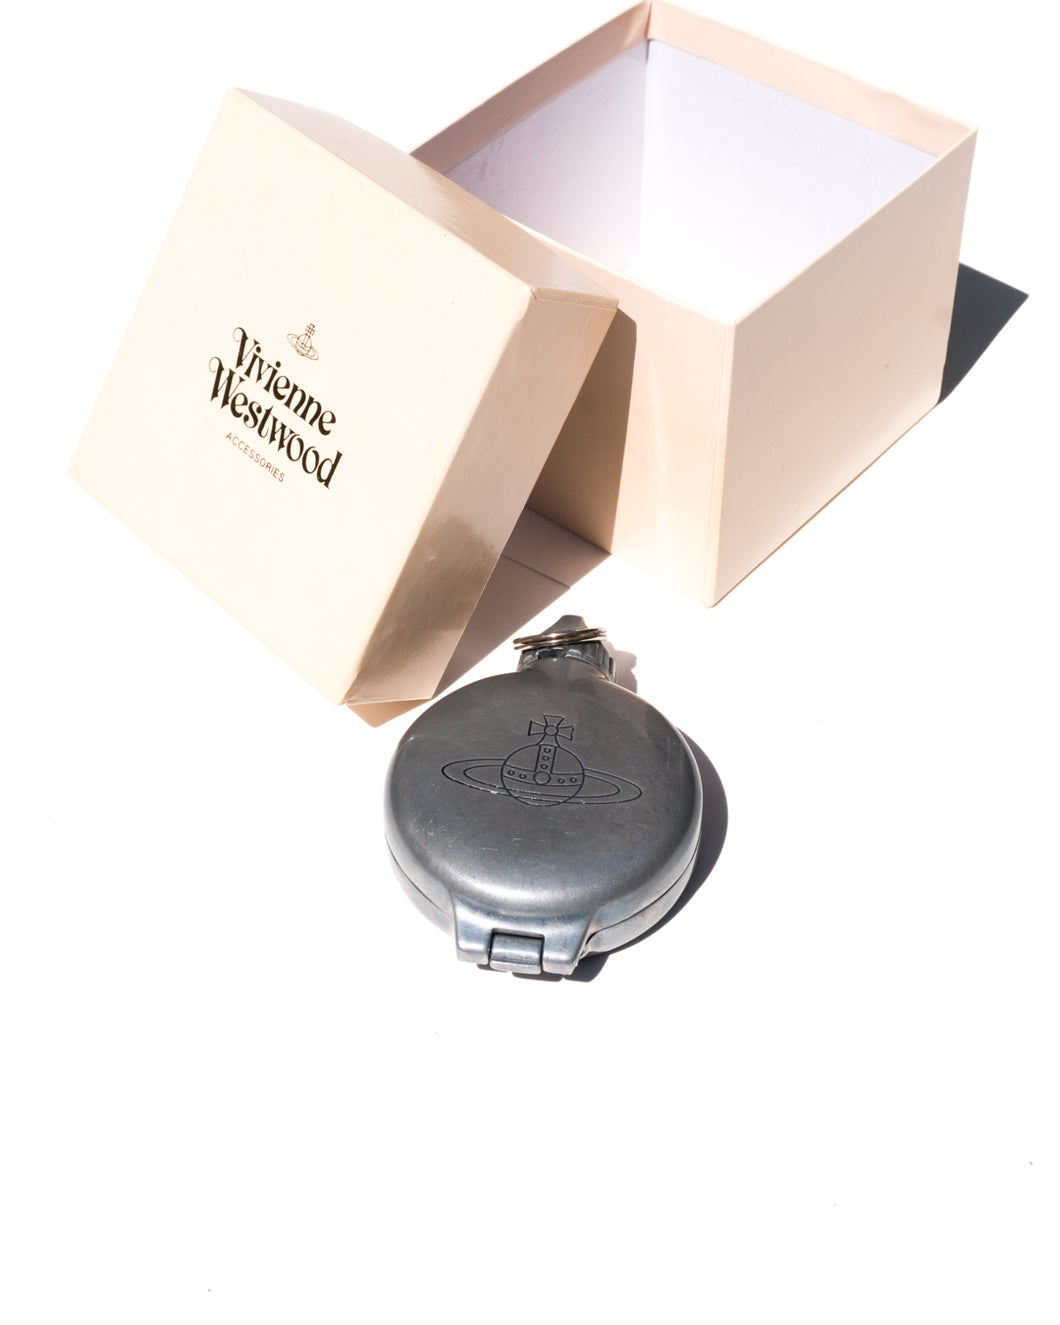 Vivienne Westwood Ashtray